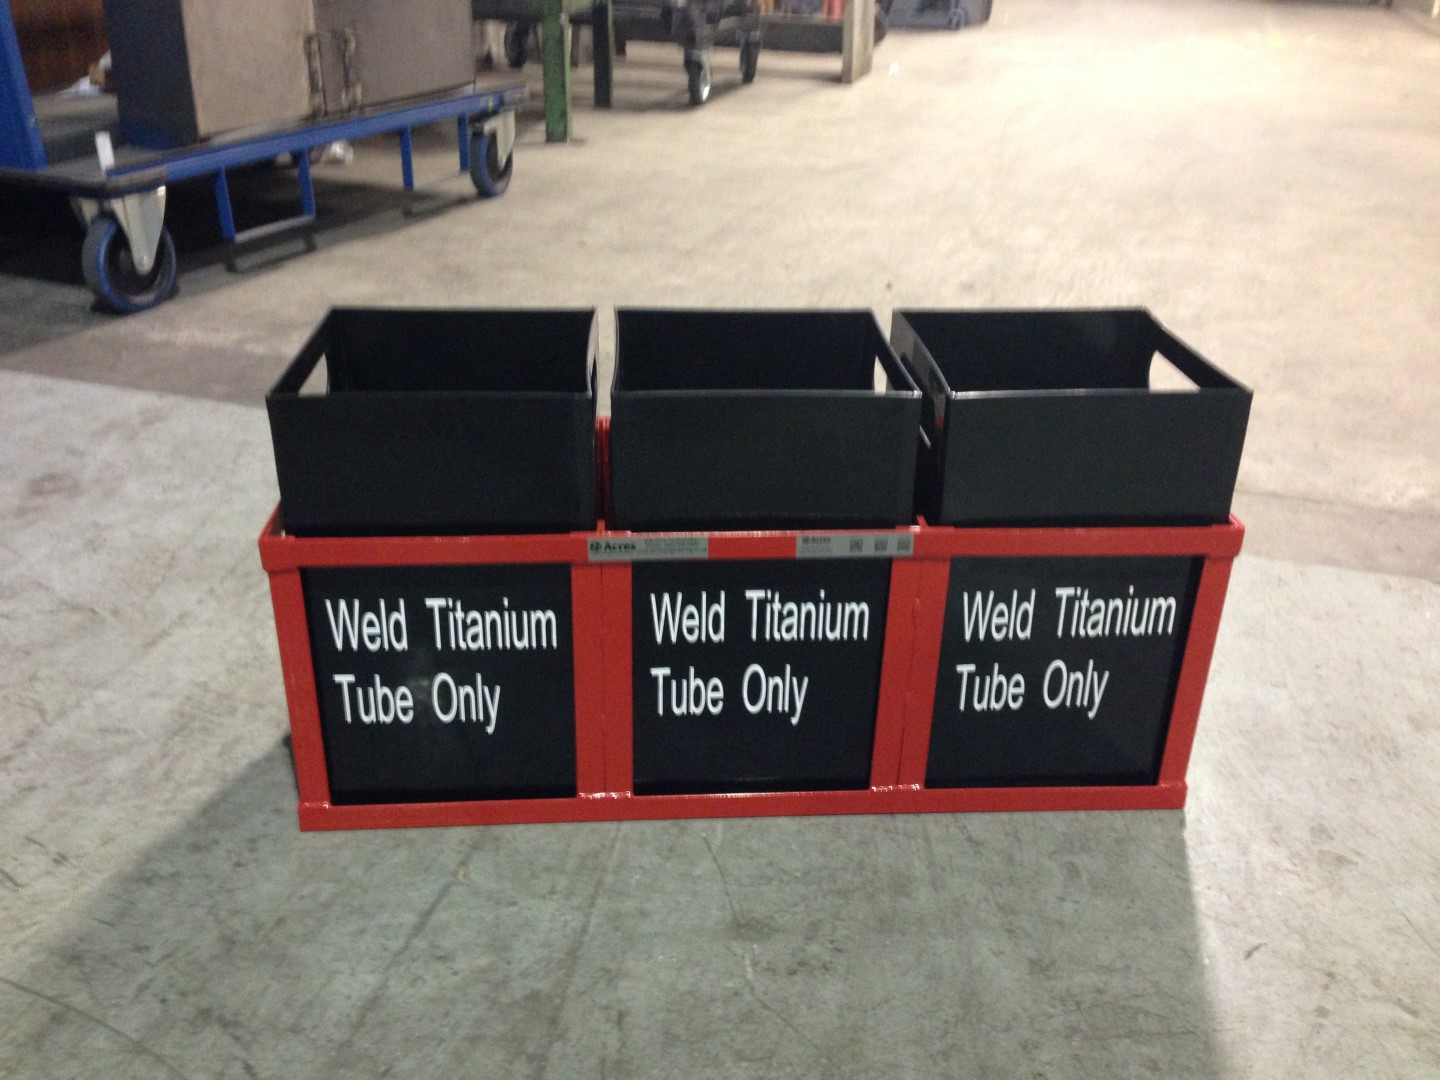 AD-249-2013-08 – Waste Trays for Weld Area